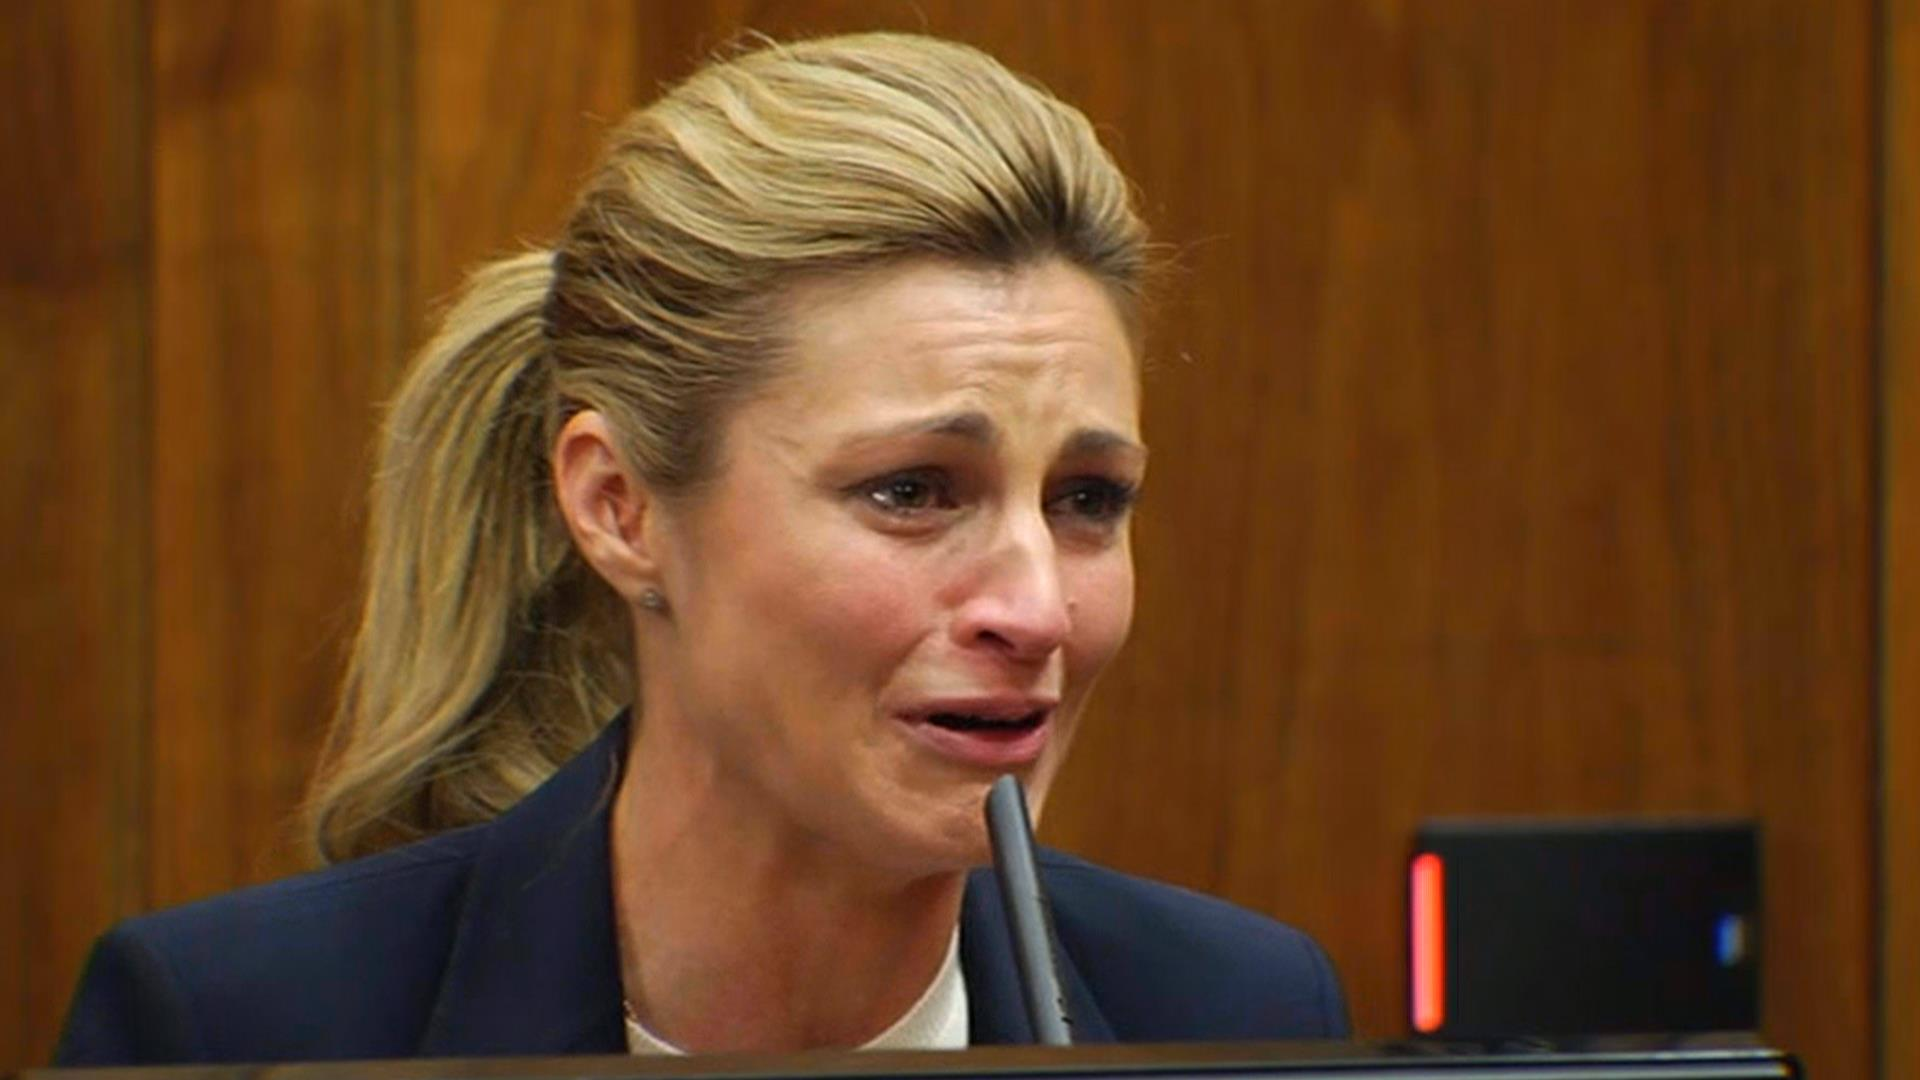 Erin Andrews Gives Tearful Testimony In Stalker Trial -3923